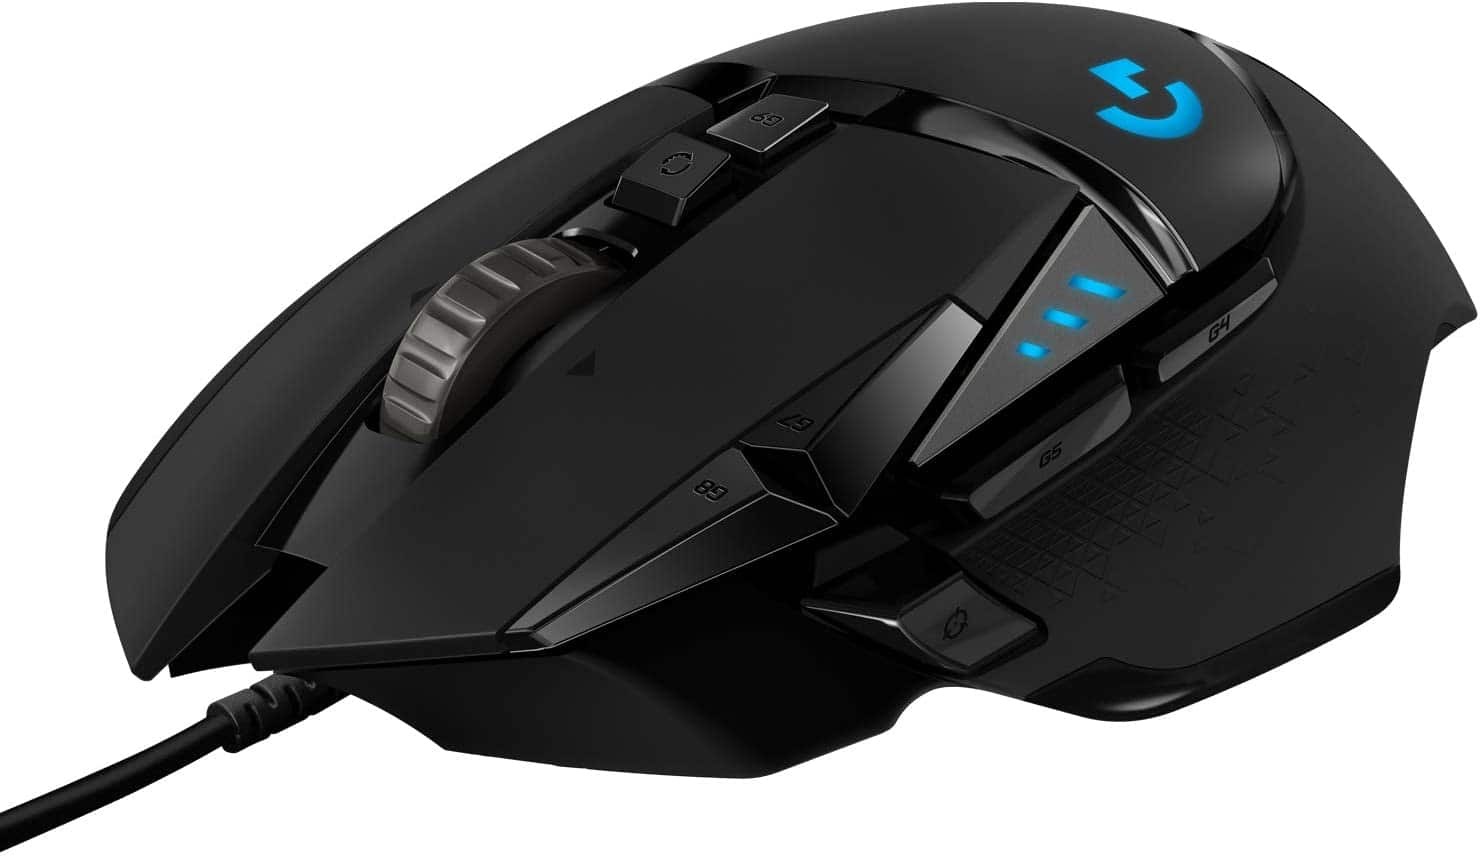 Logitech G502 Hero Wired Gaming Mouse $39.99